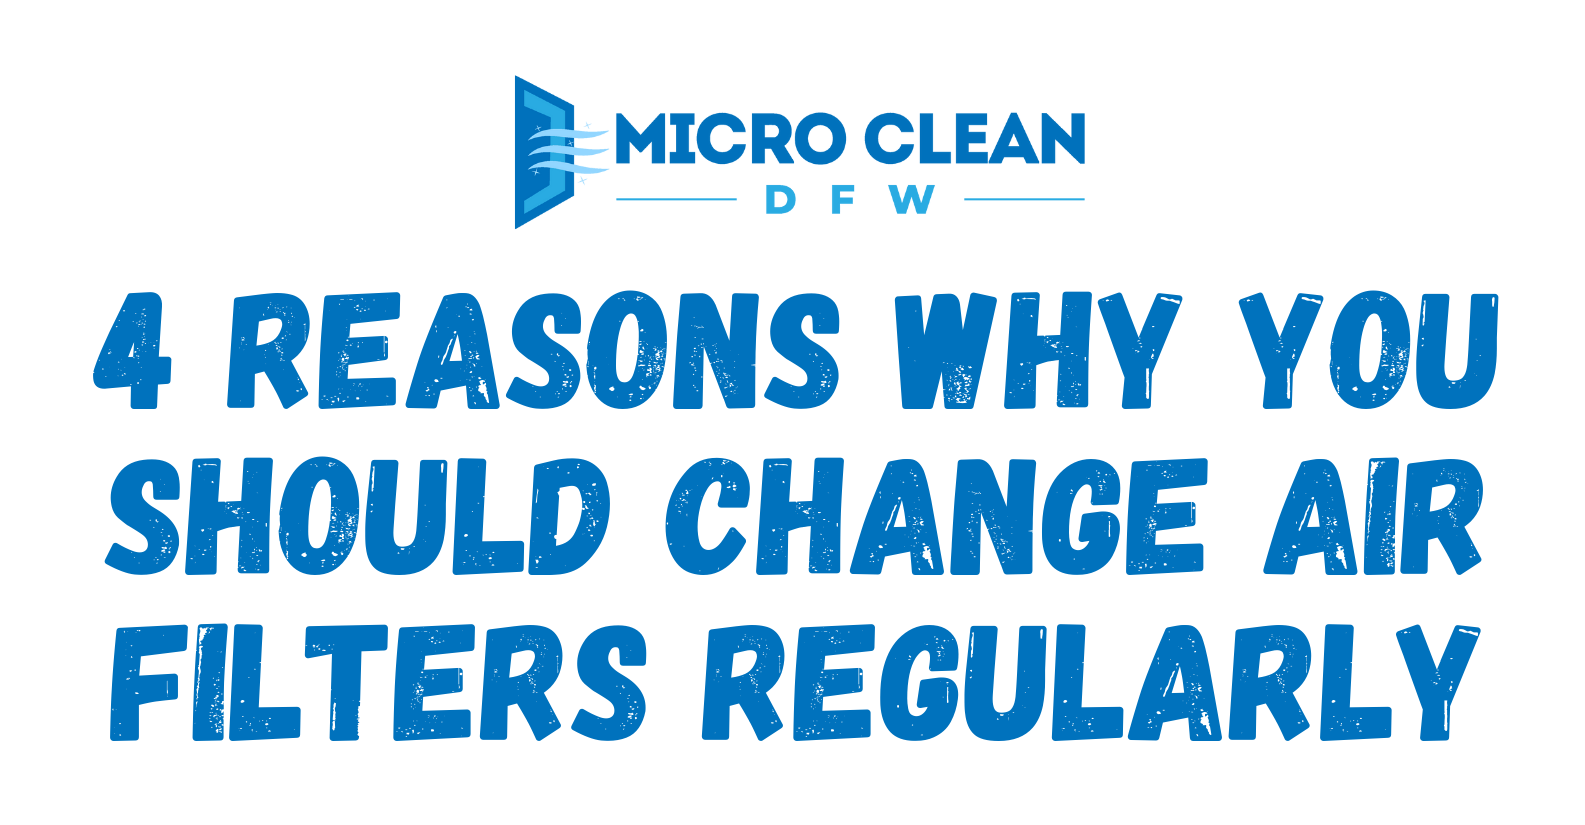 4 Reasons Why You Should Change Air Filters Regularly